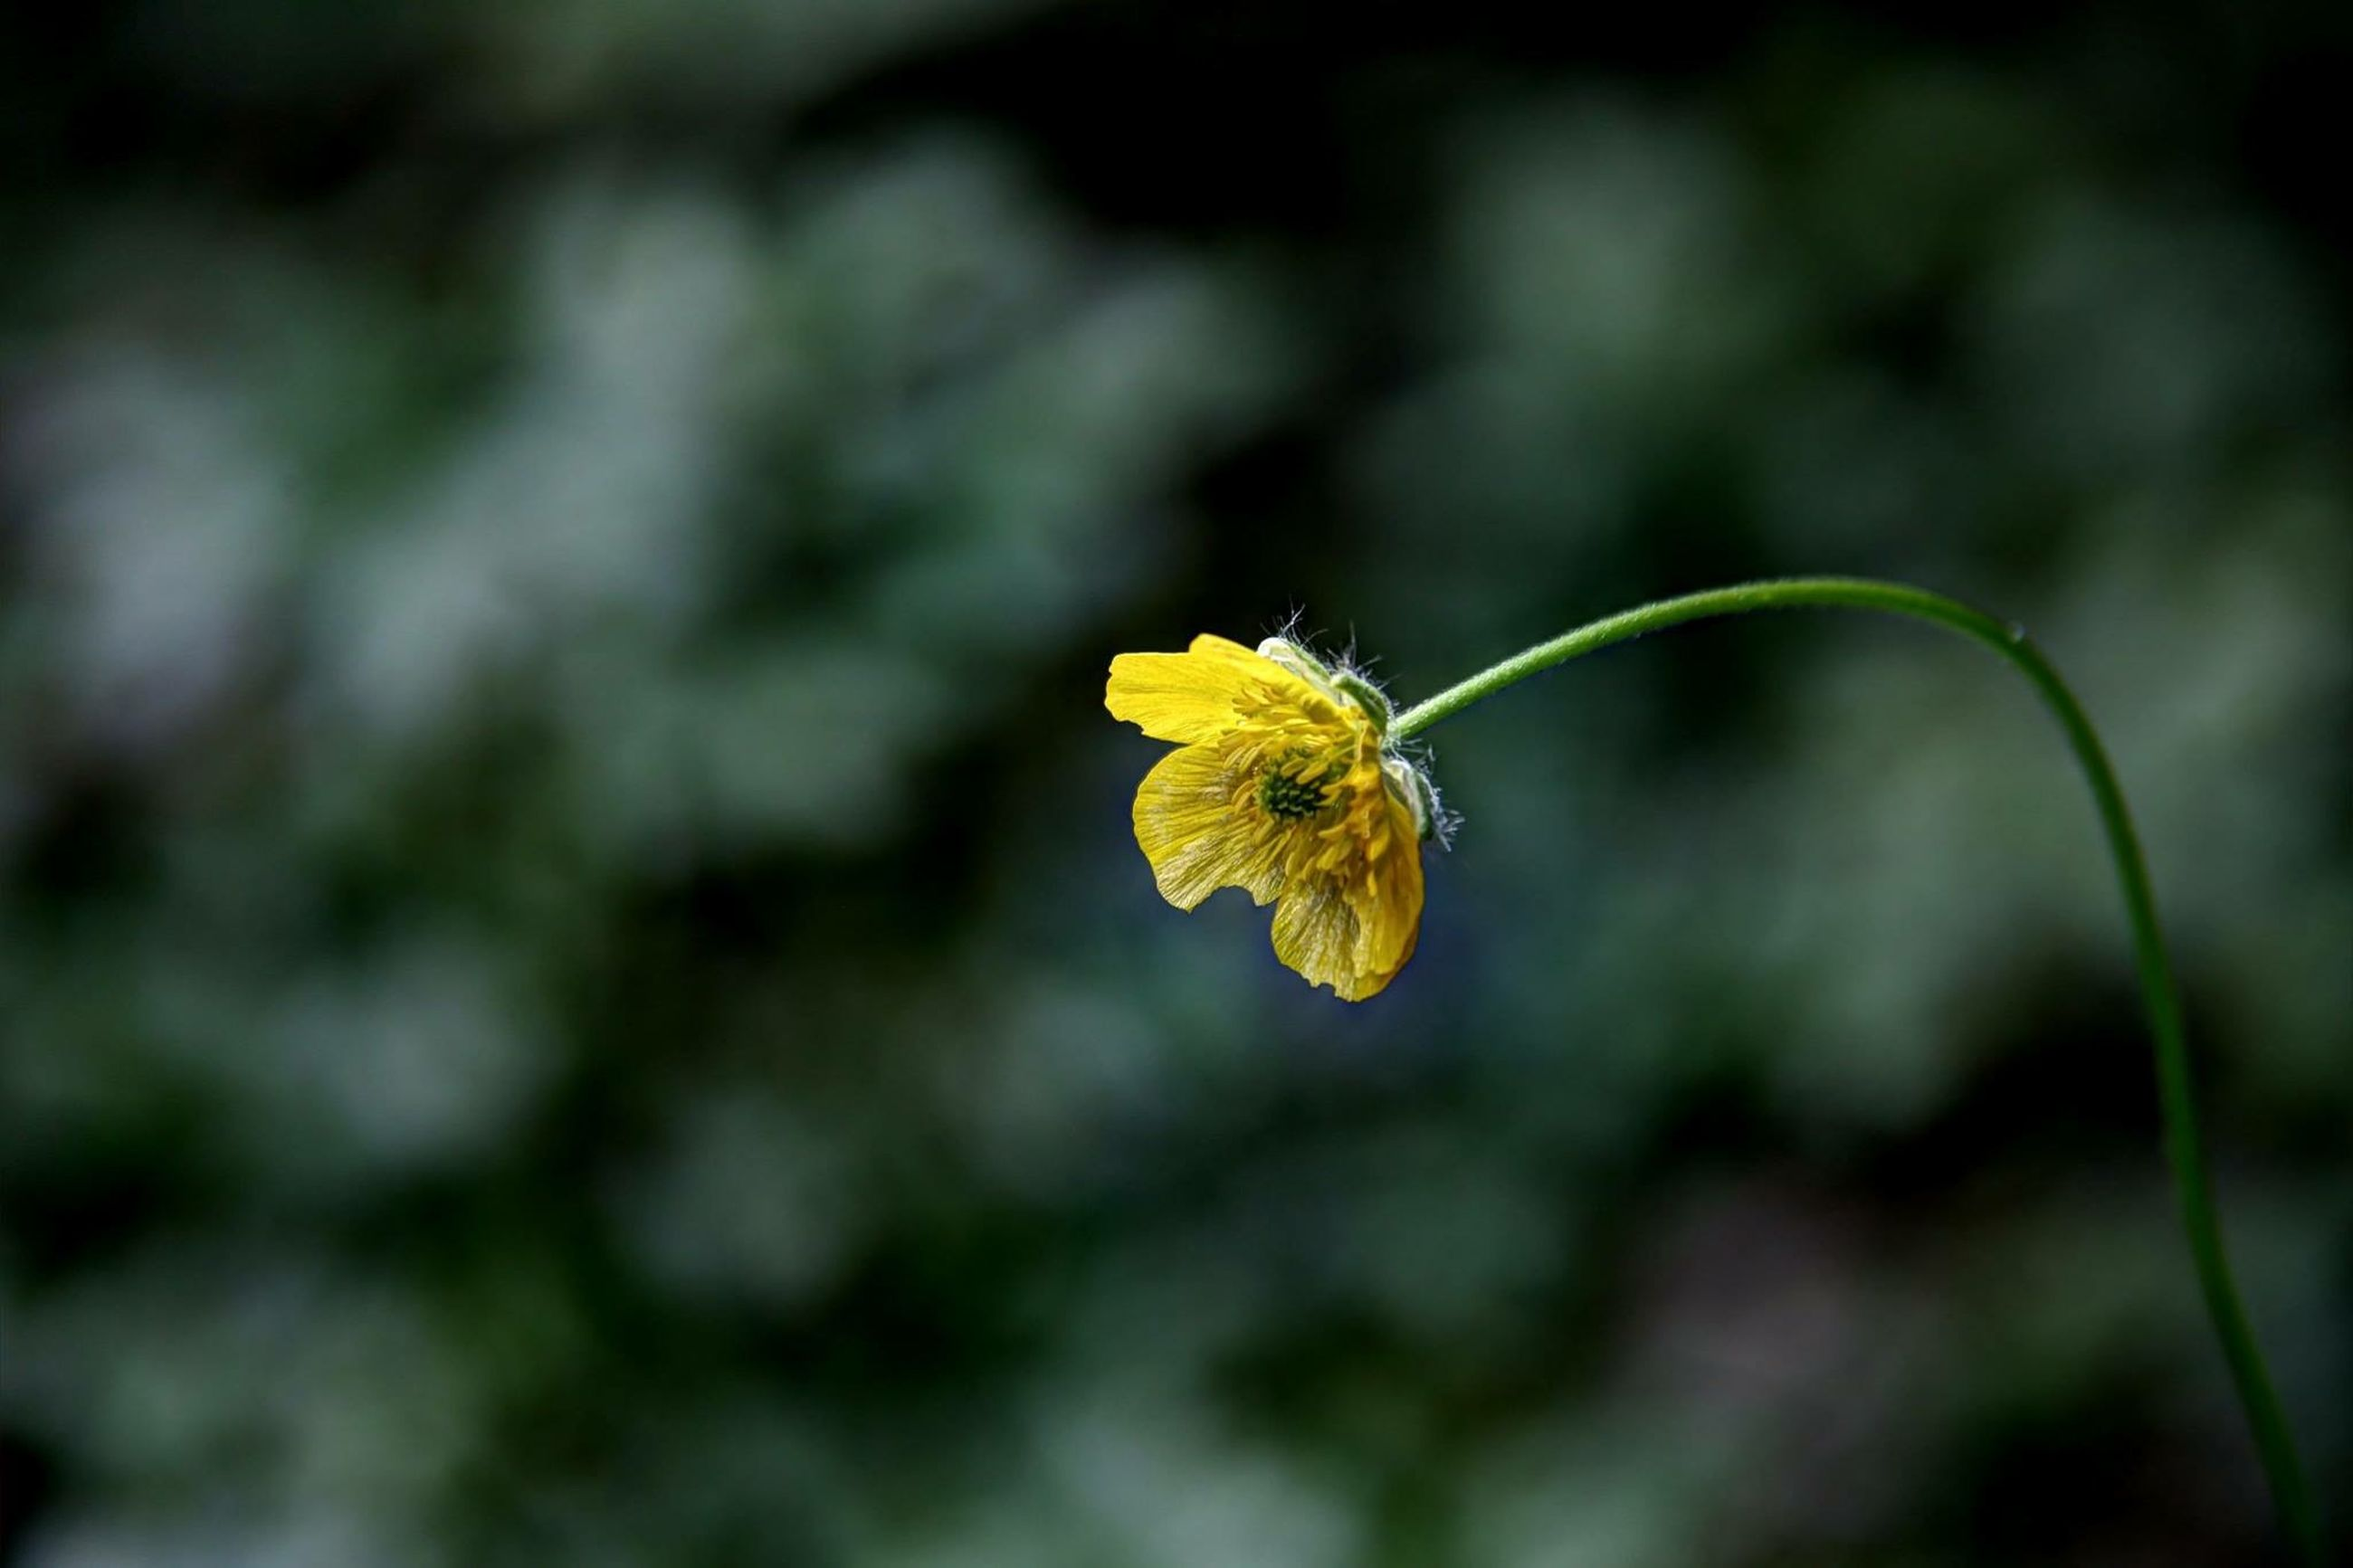 flower, insect, one animal, yellow, animals in the wild, animal themes, wildlife, focus on foreground, fragility, freshness, petal, close-up, flower head, pollination, growth, nature, beauty in nature, plant, bee, selective focus